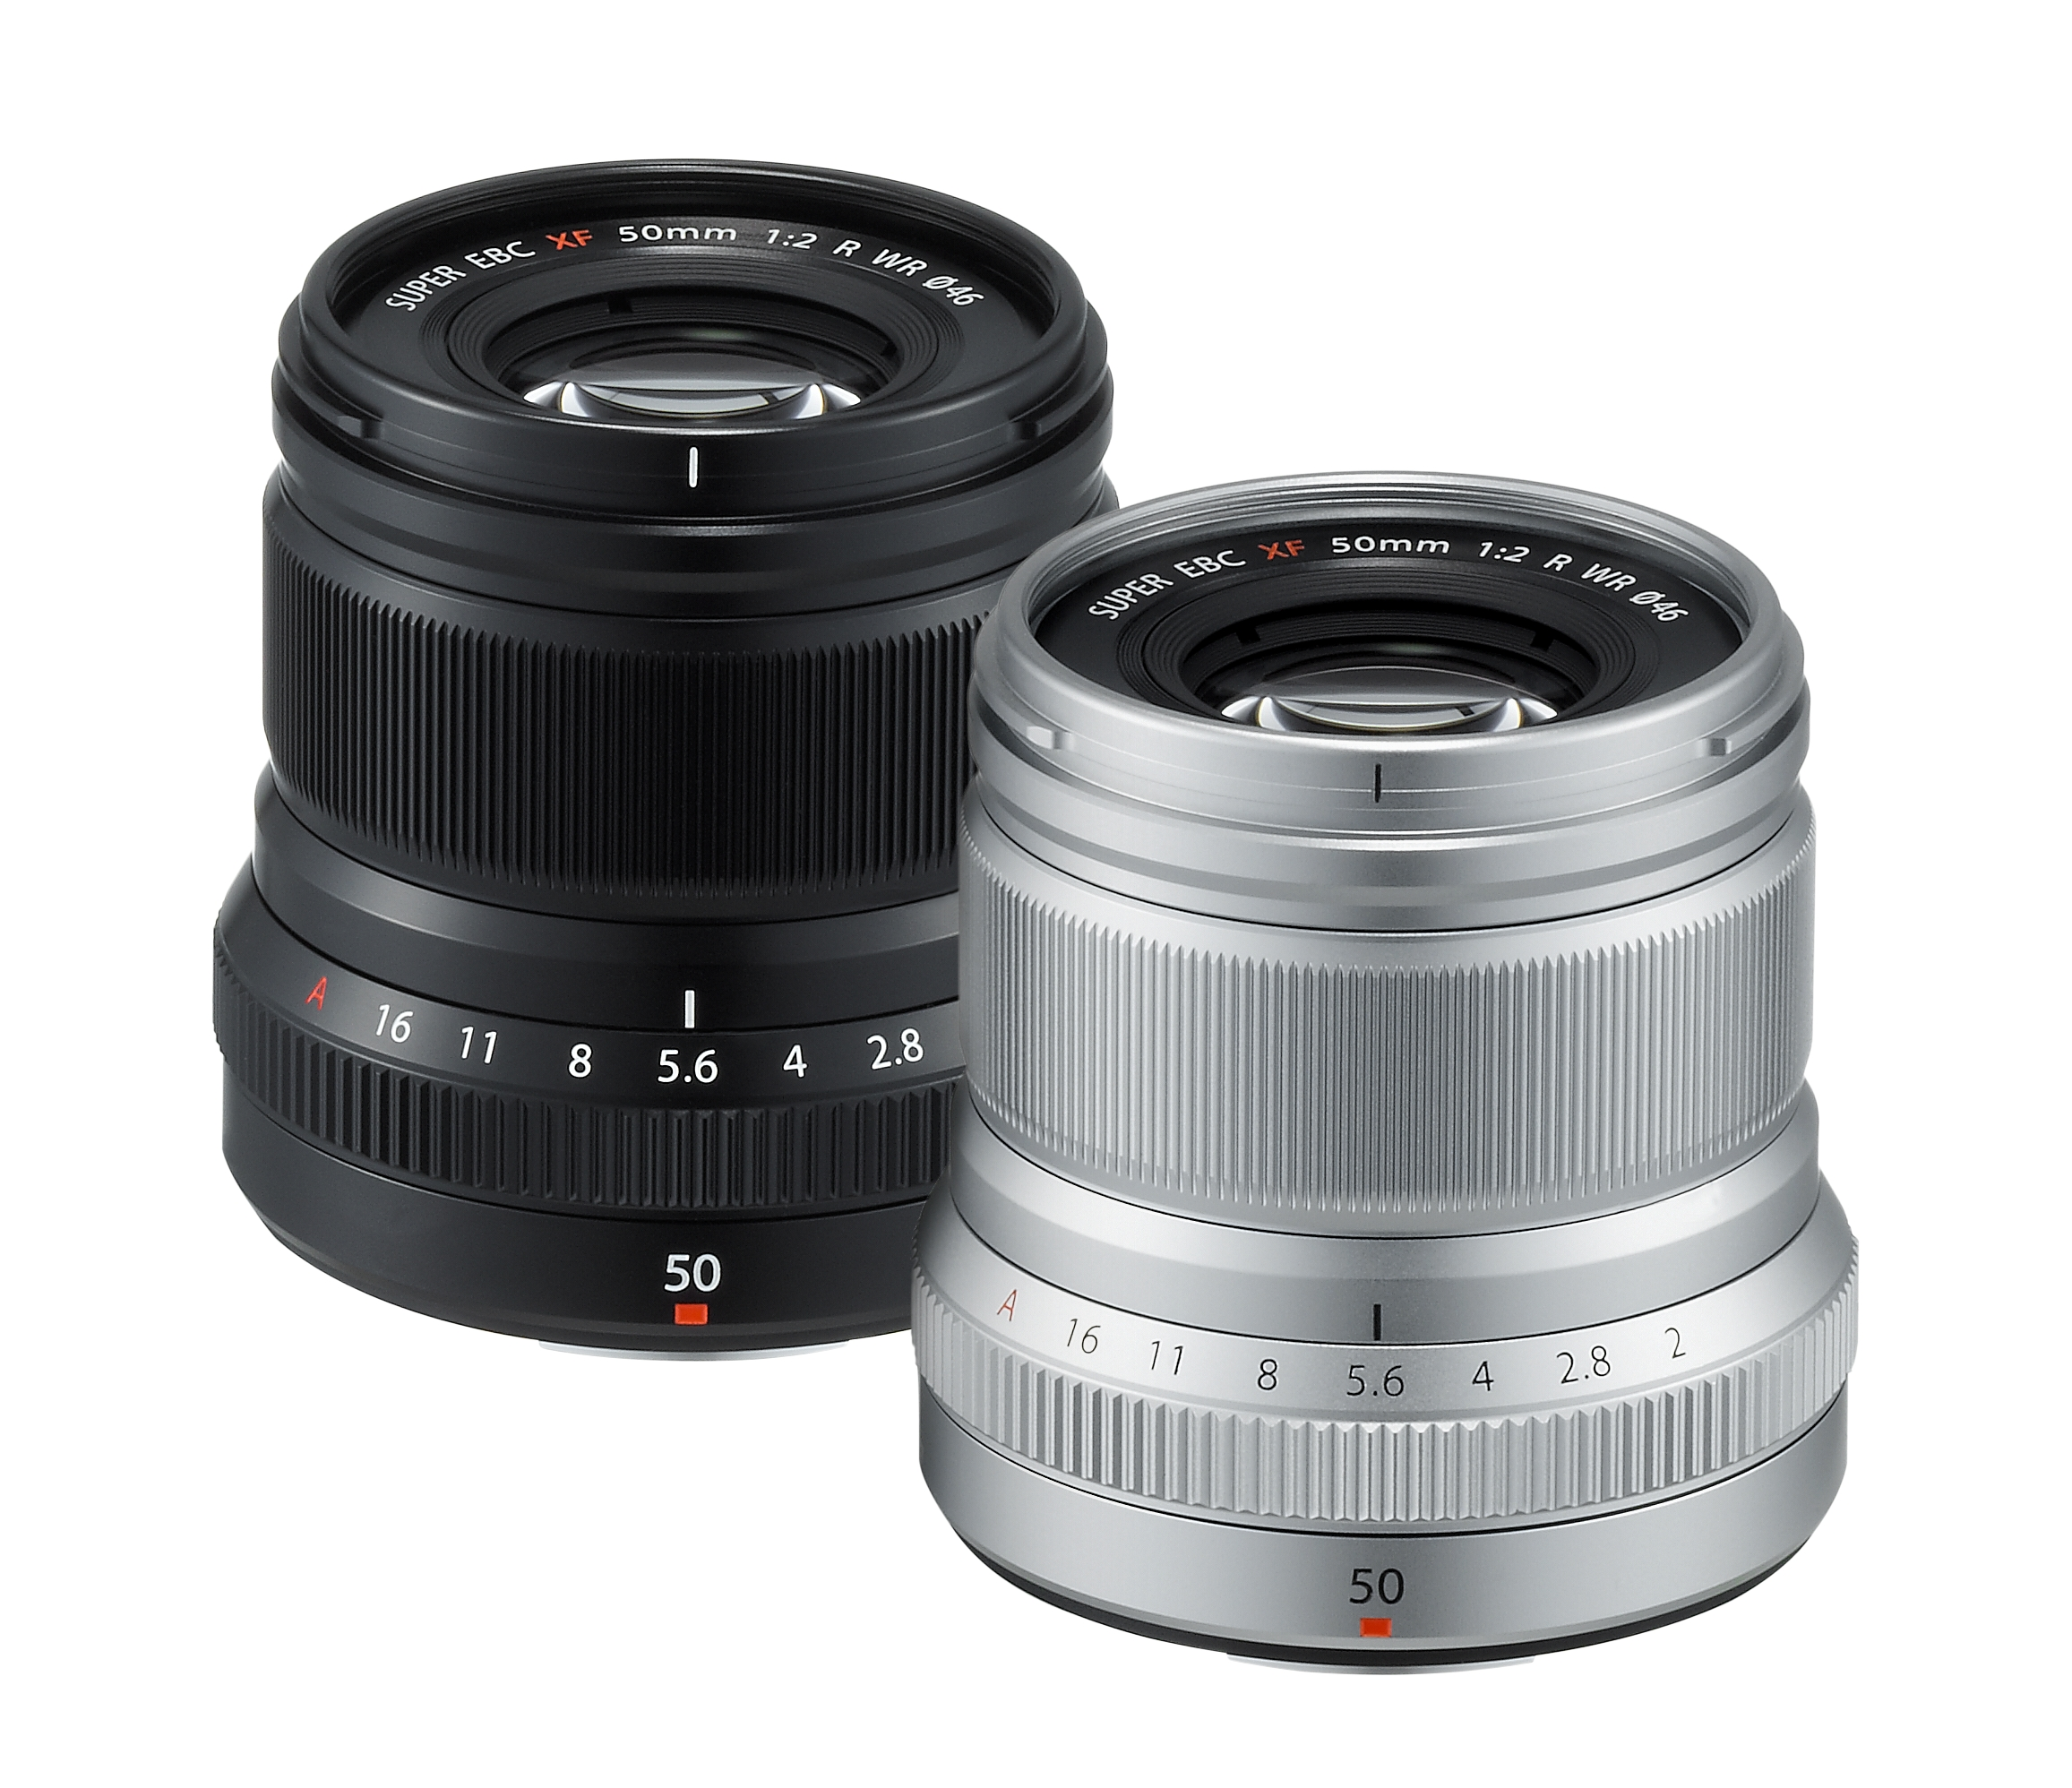 Fujifilm release details of a new mid-telephoto lens, the XF 50mm f/2 R WR